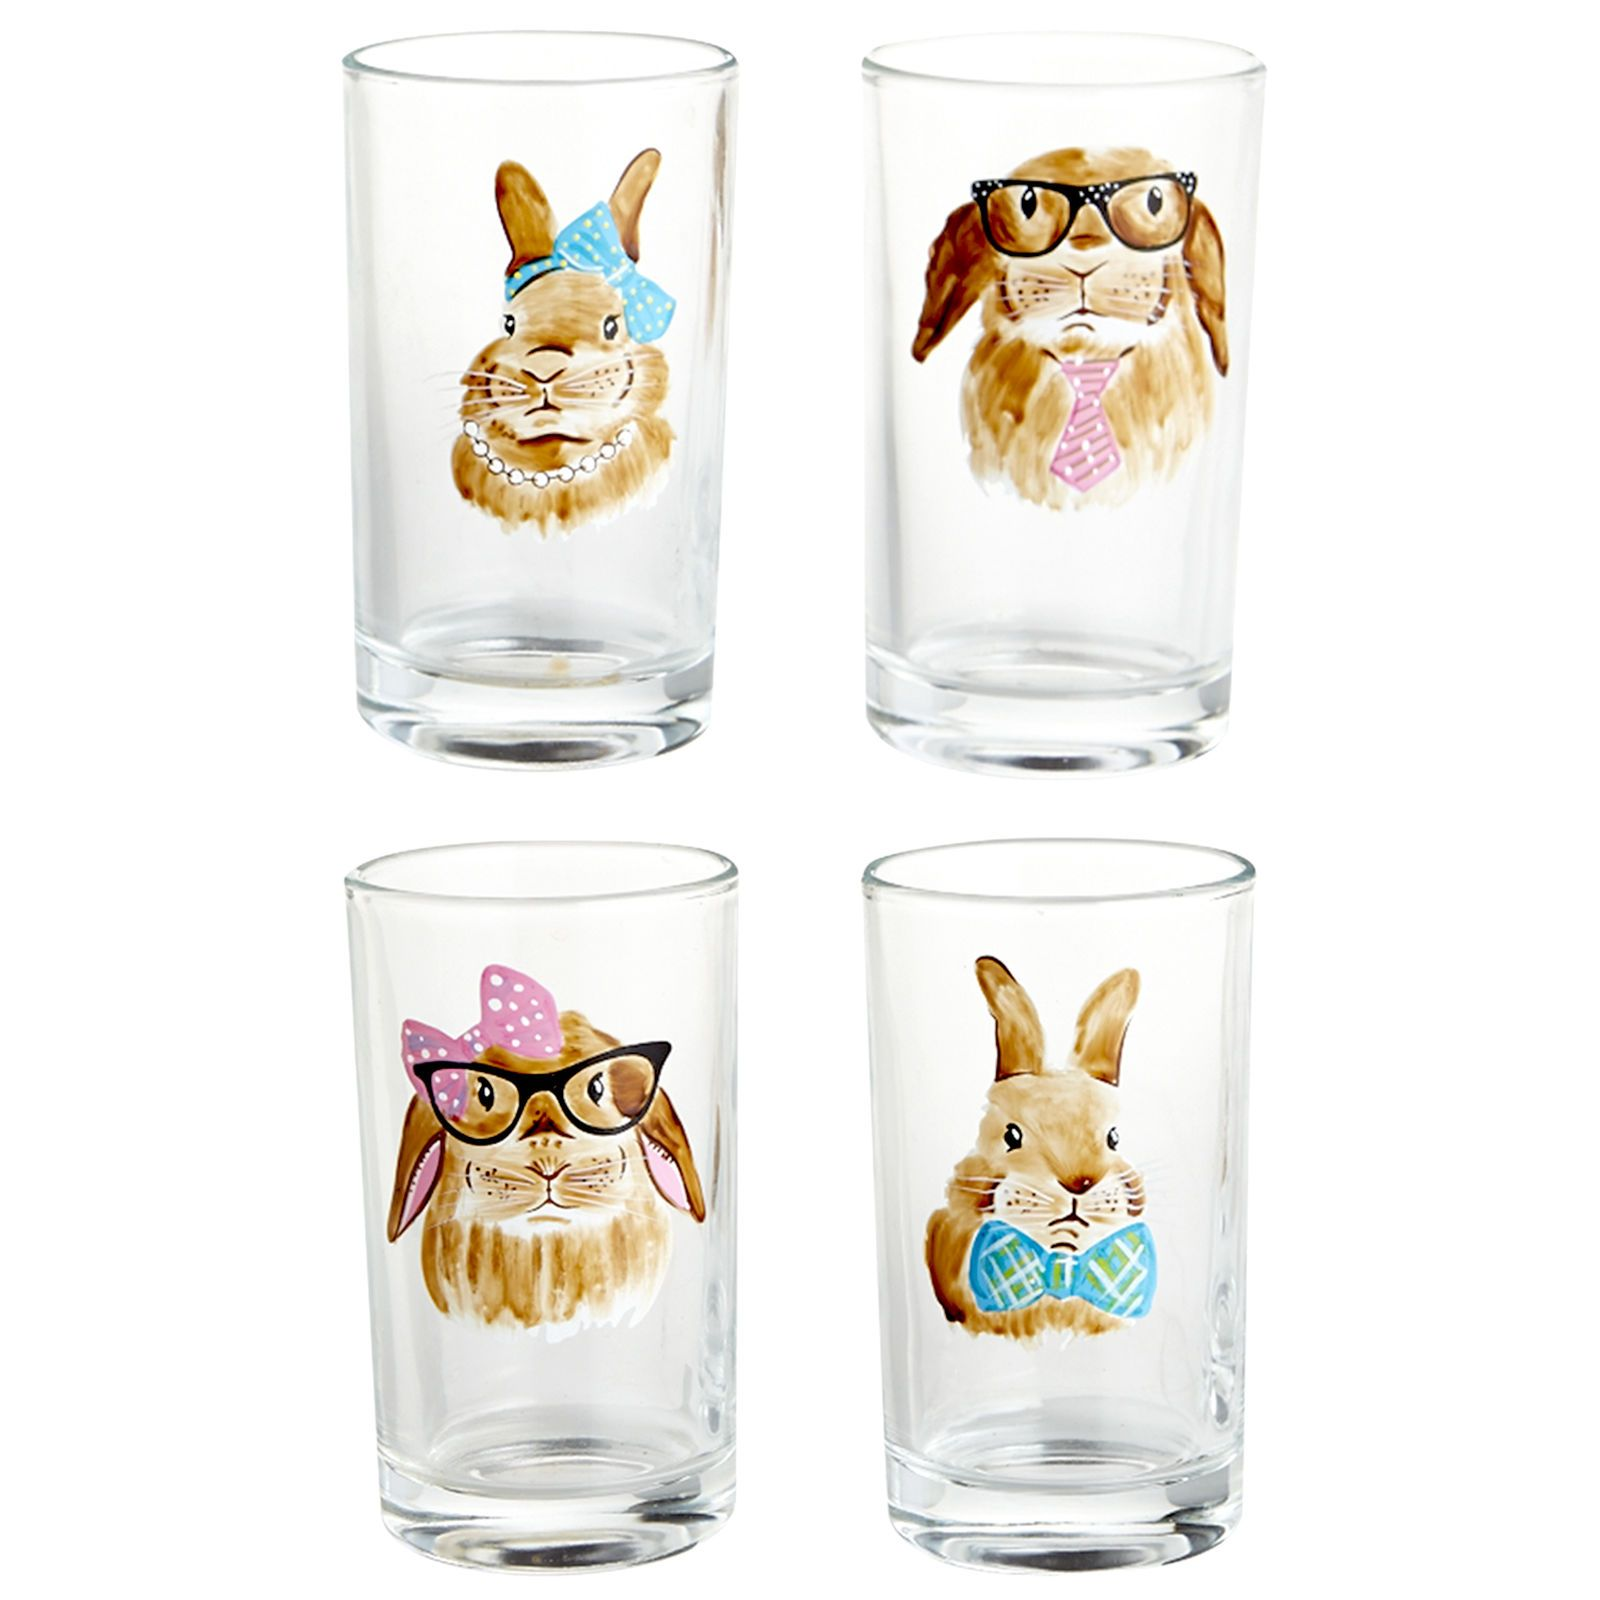 They say you should never separate bonded rabbits, so it's a good thing these adorable bunnies come as a set of four. Their charming, well-accessorized faces have been painted by hand atop soda lime glass tumblers, ready to bring Easter cheer to all who sip from them.